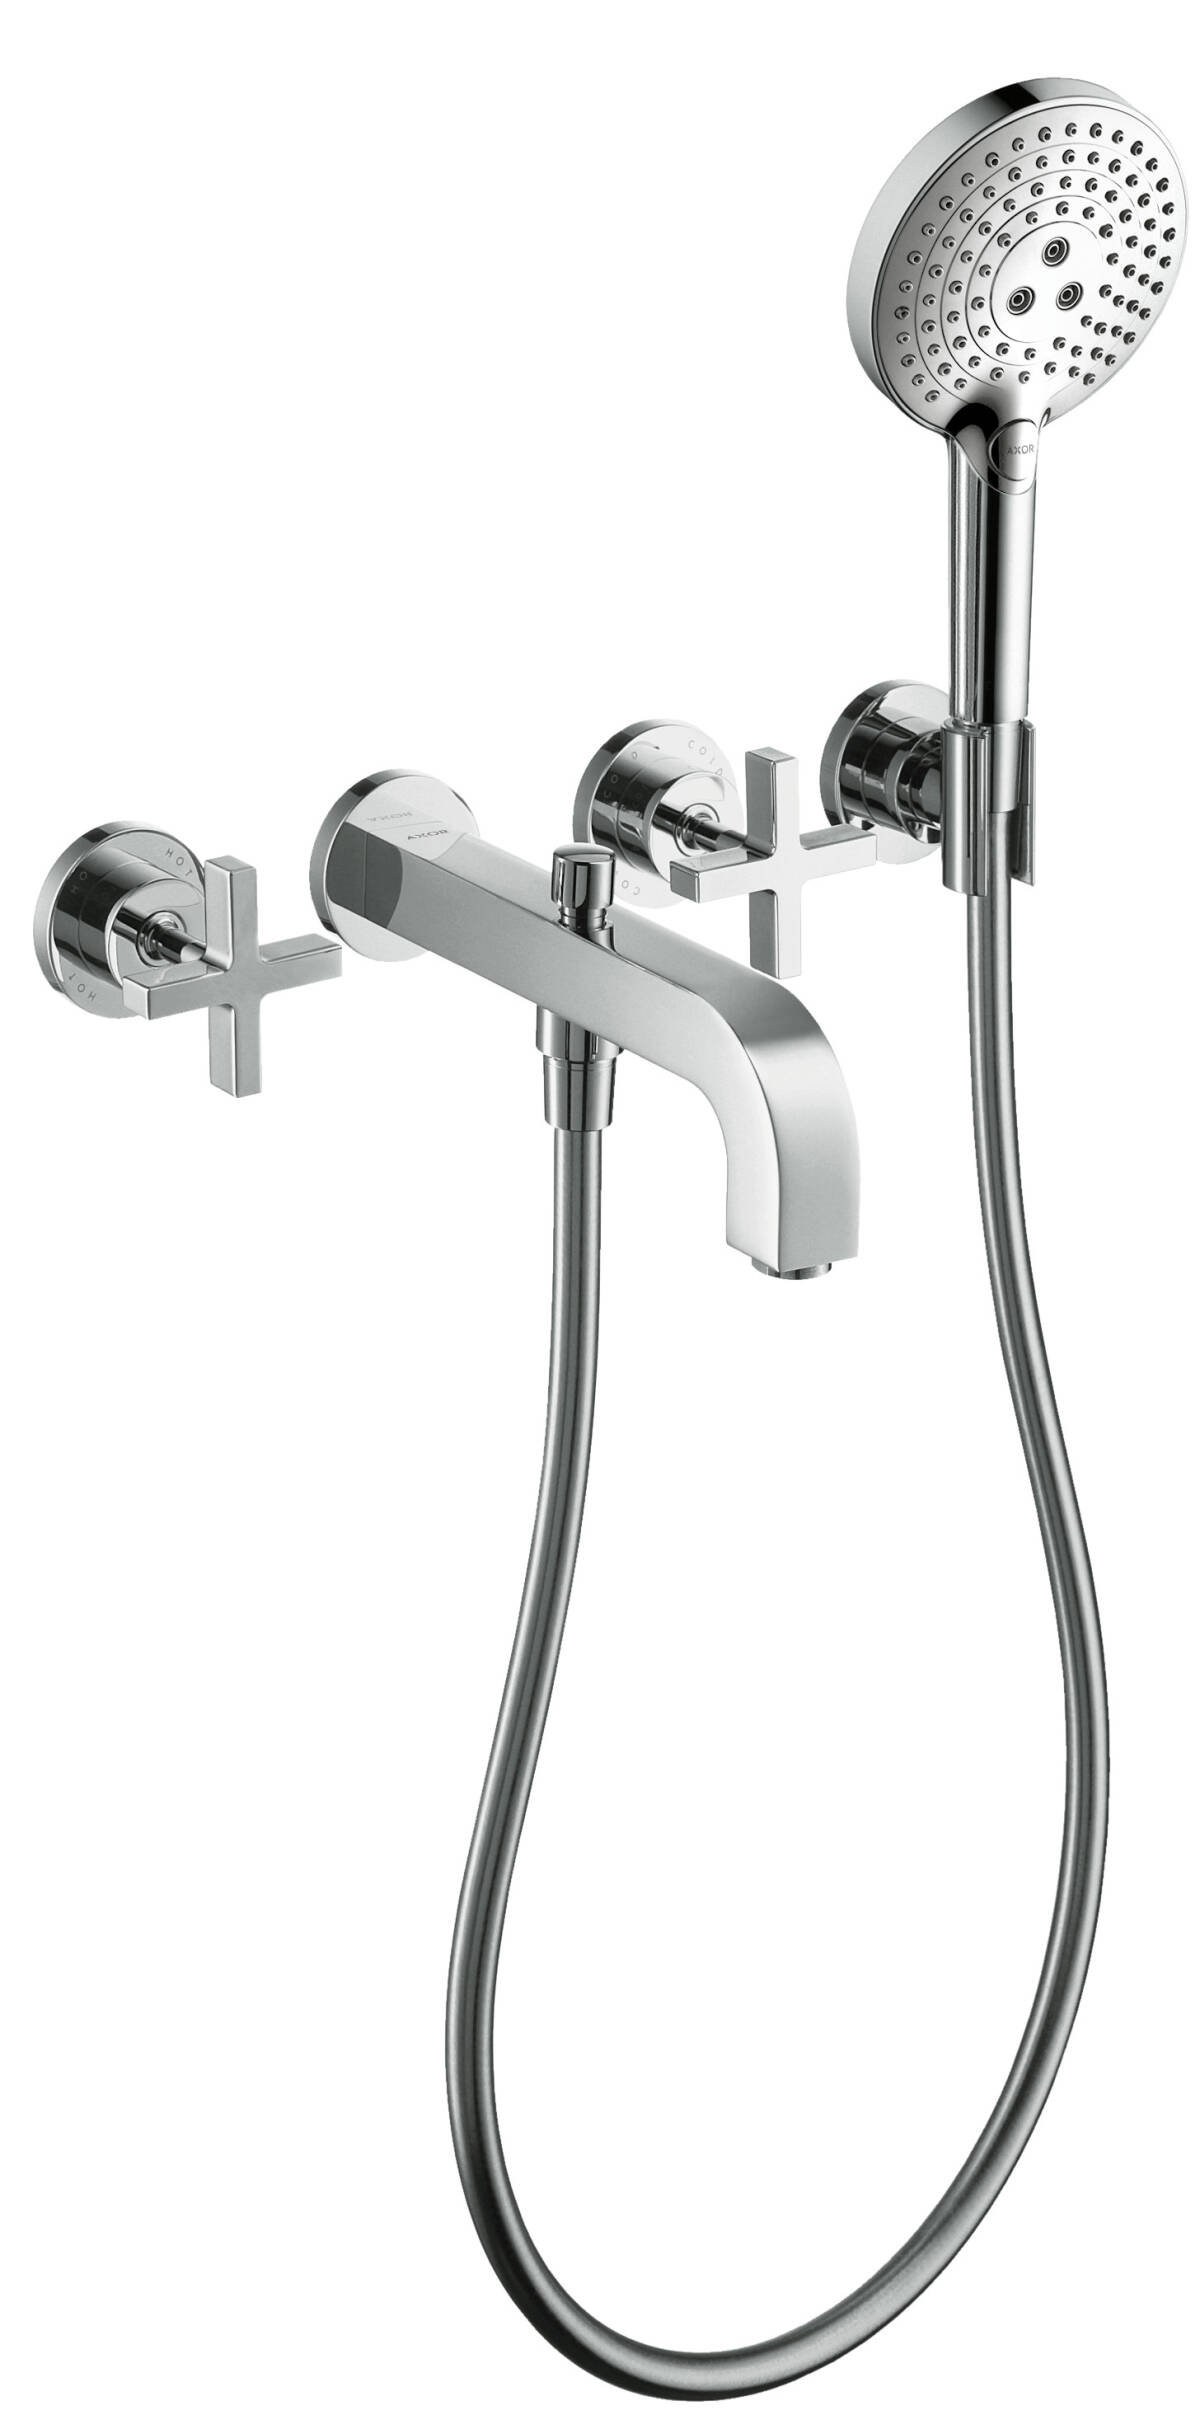 3-hole bath mixer for concealed installation wall-mounted with cross handles and escutcheons, Polished Red Gold, 39447300